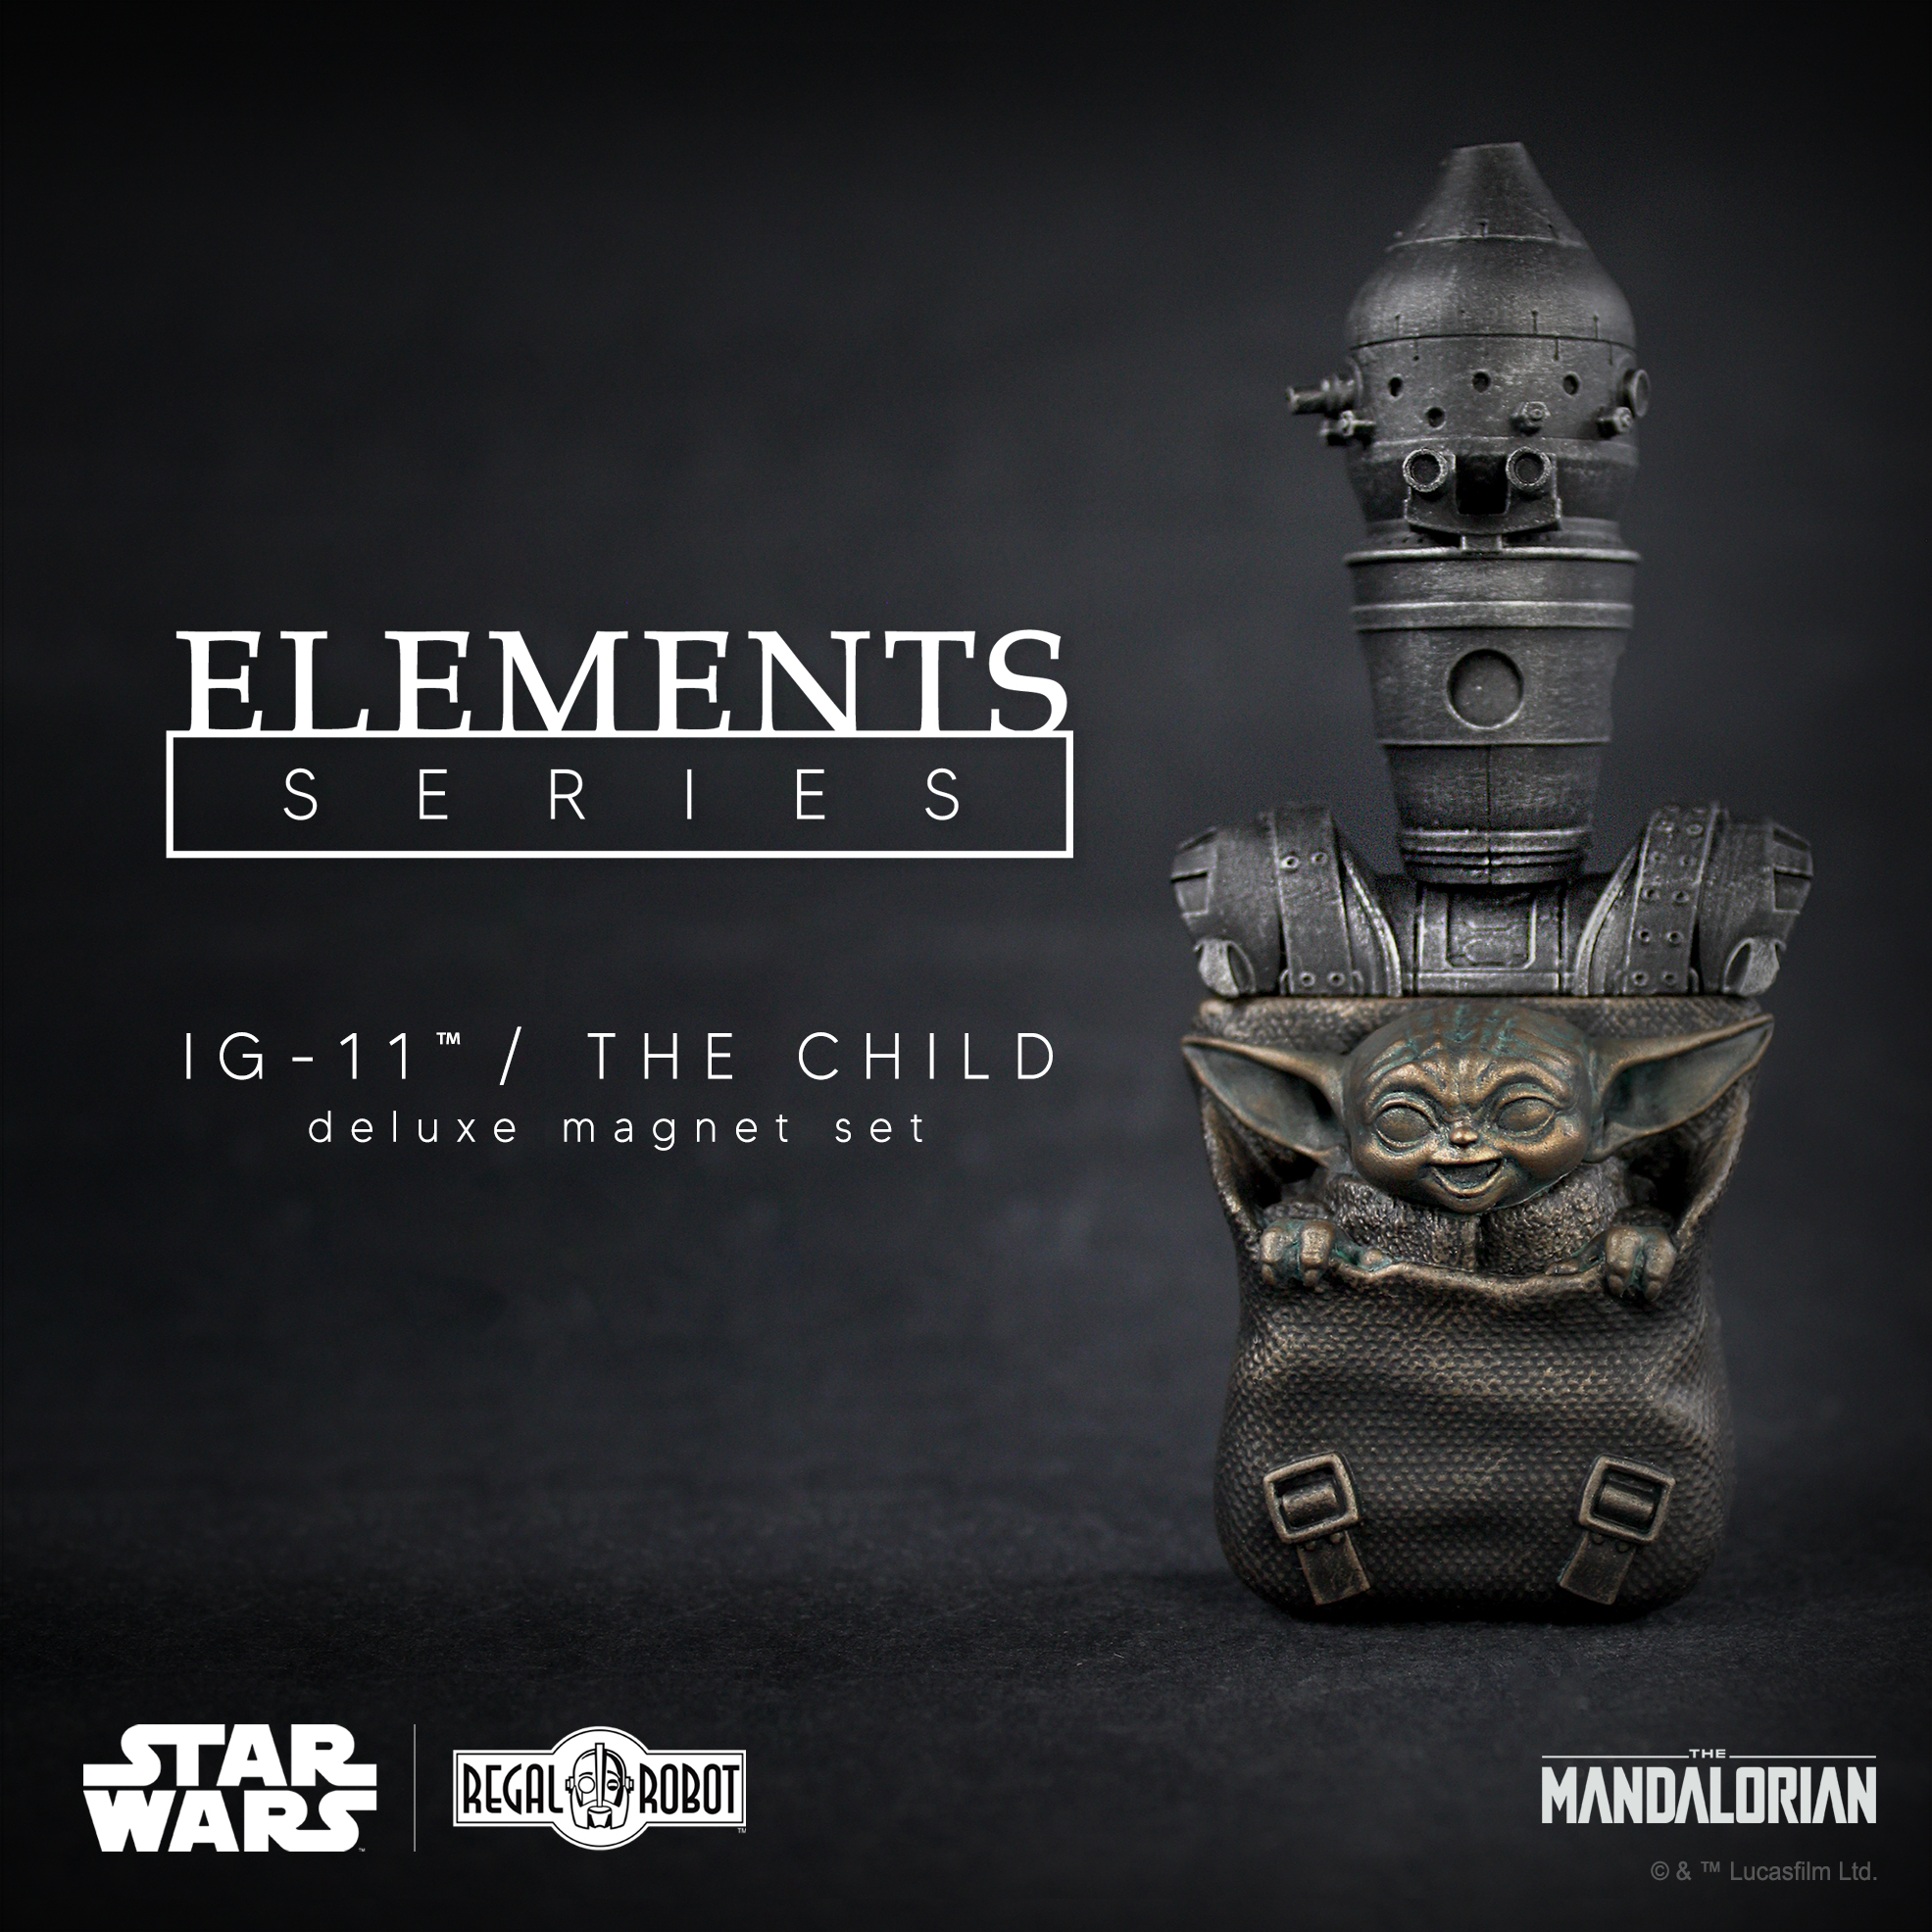 The Mandalorian droid IG-11 & Baby Yoda aka the Child magnets from Regal Robot